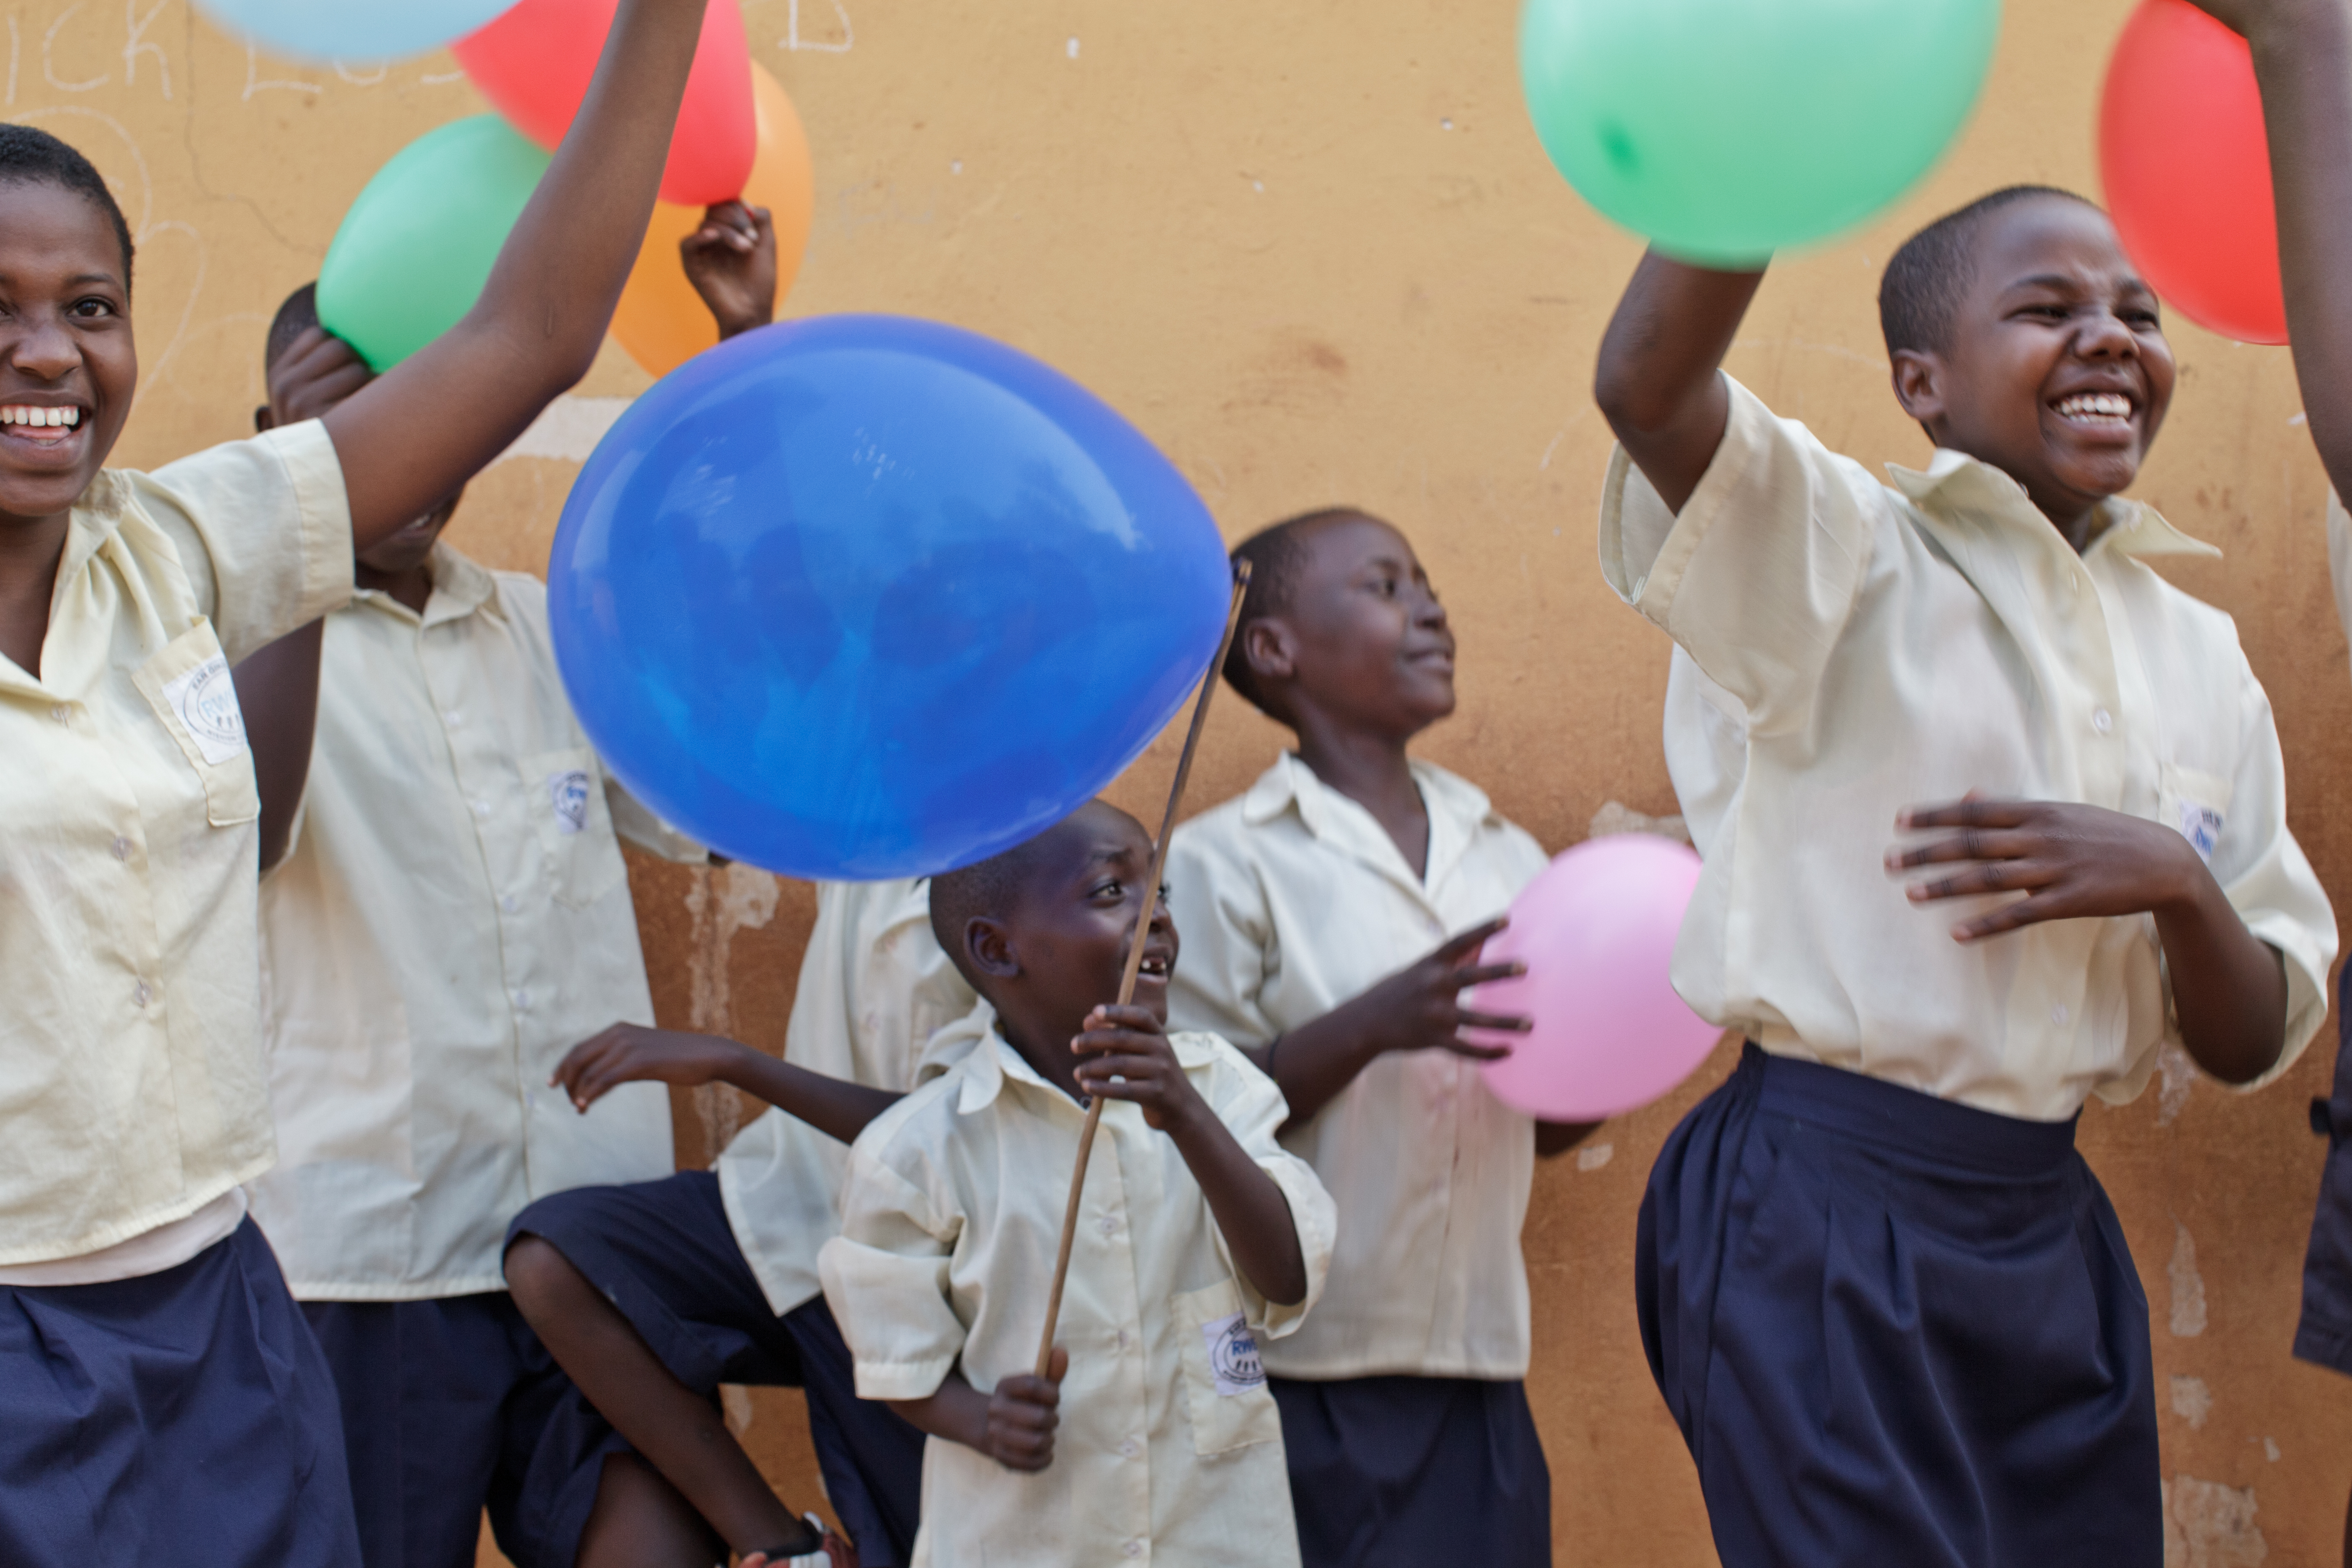 A group of children plays with multicolour balloons in Rwanda.